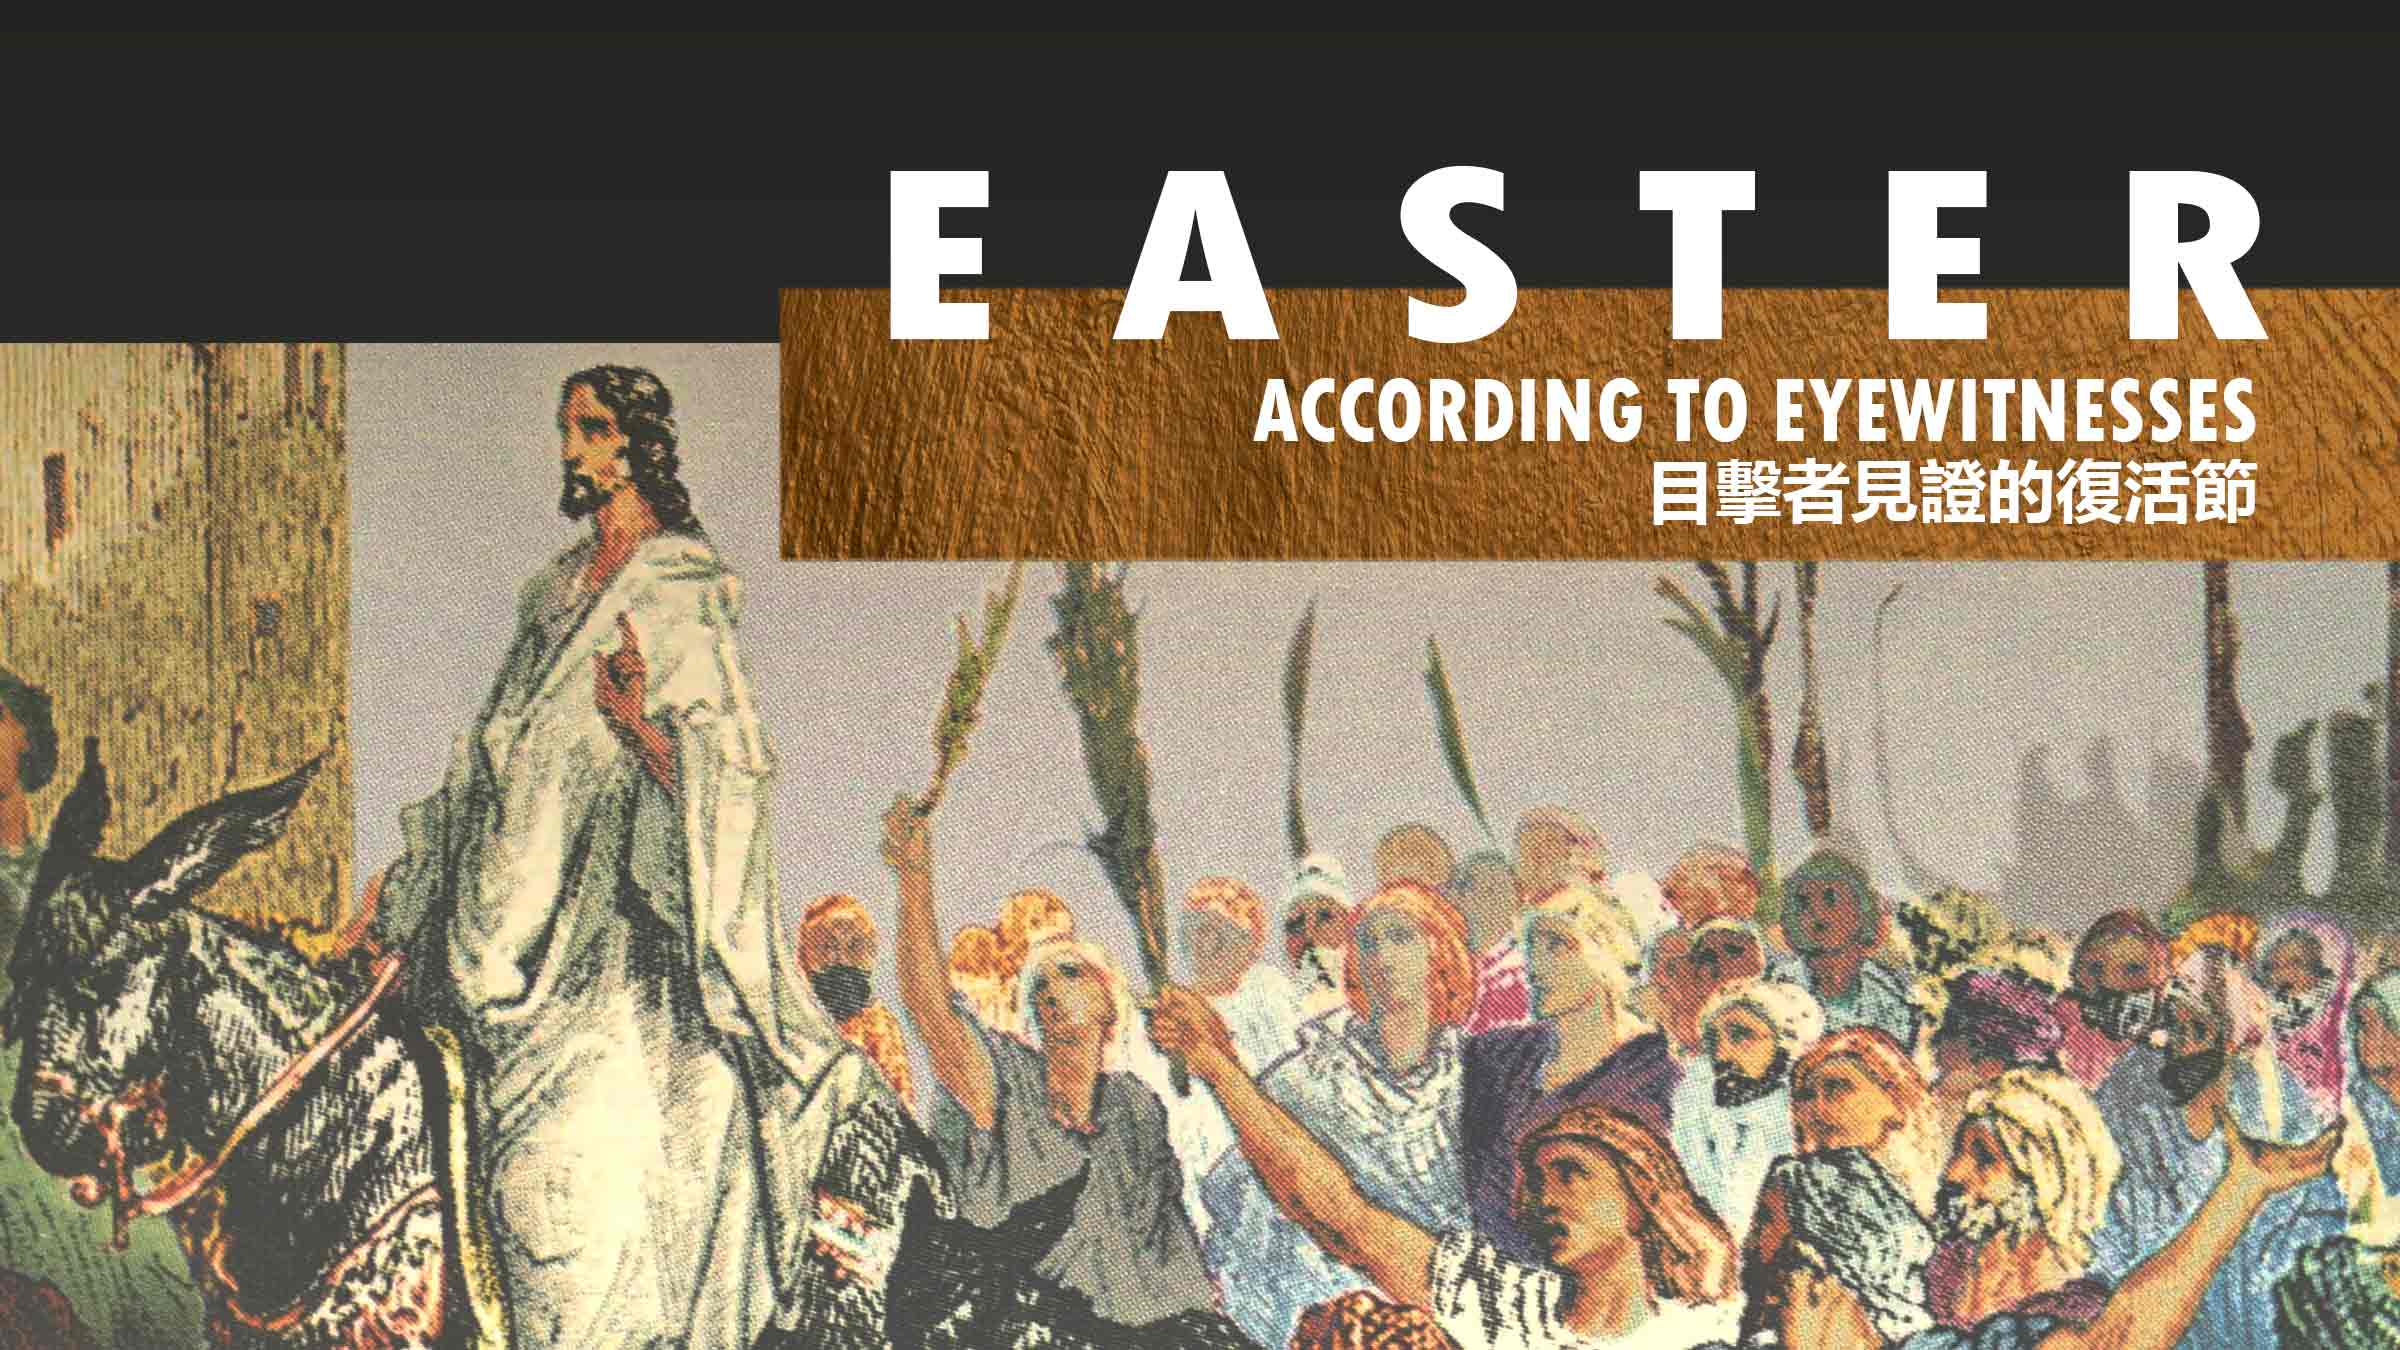 Easter-According-to-Eyewitnesses-2021---Title